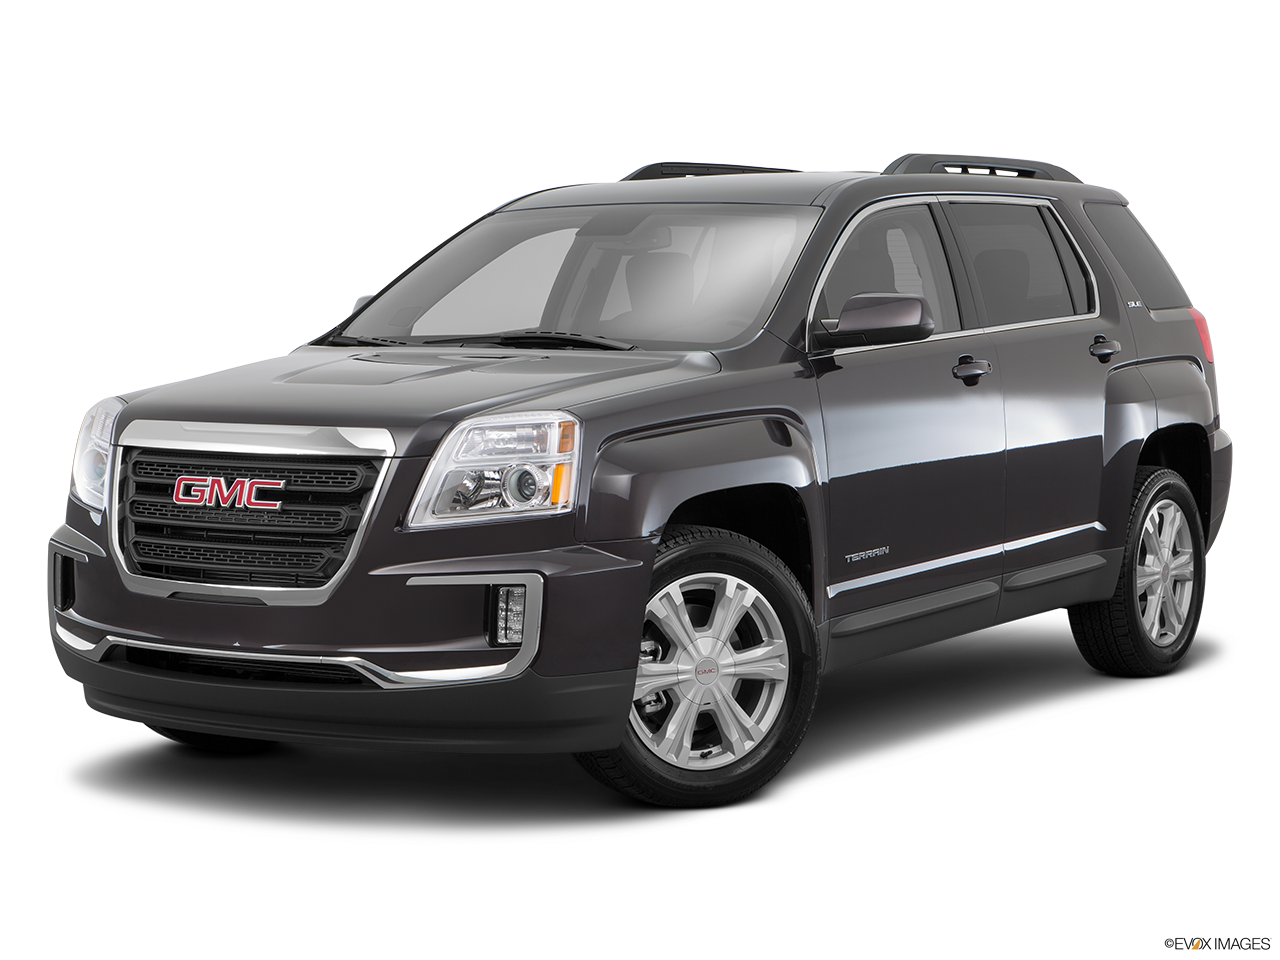 2016 gmc terrain inland empire moss bros buick gmc. Black Bedroom Furniture Sets. Home Design Ideas